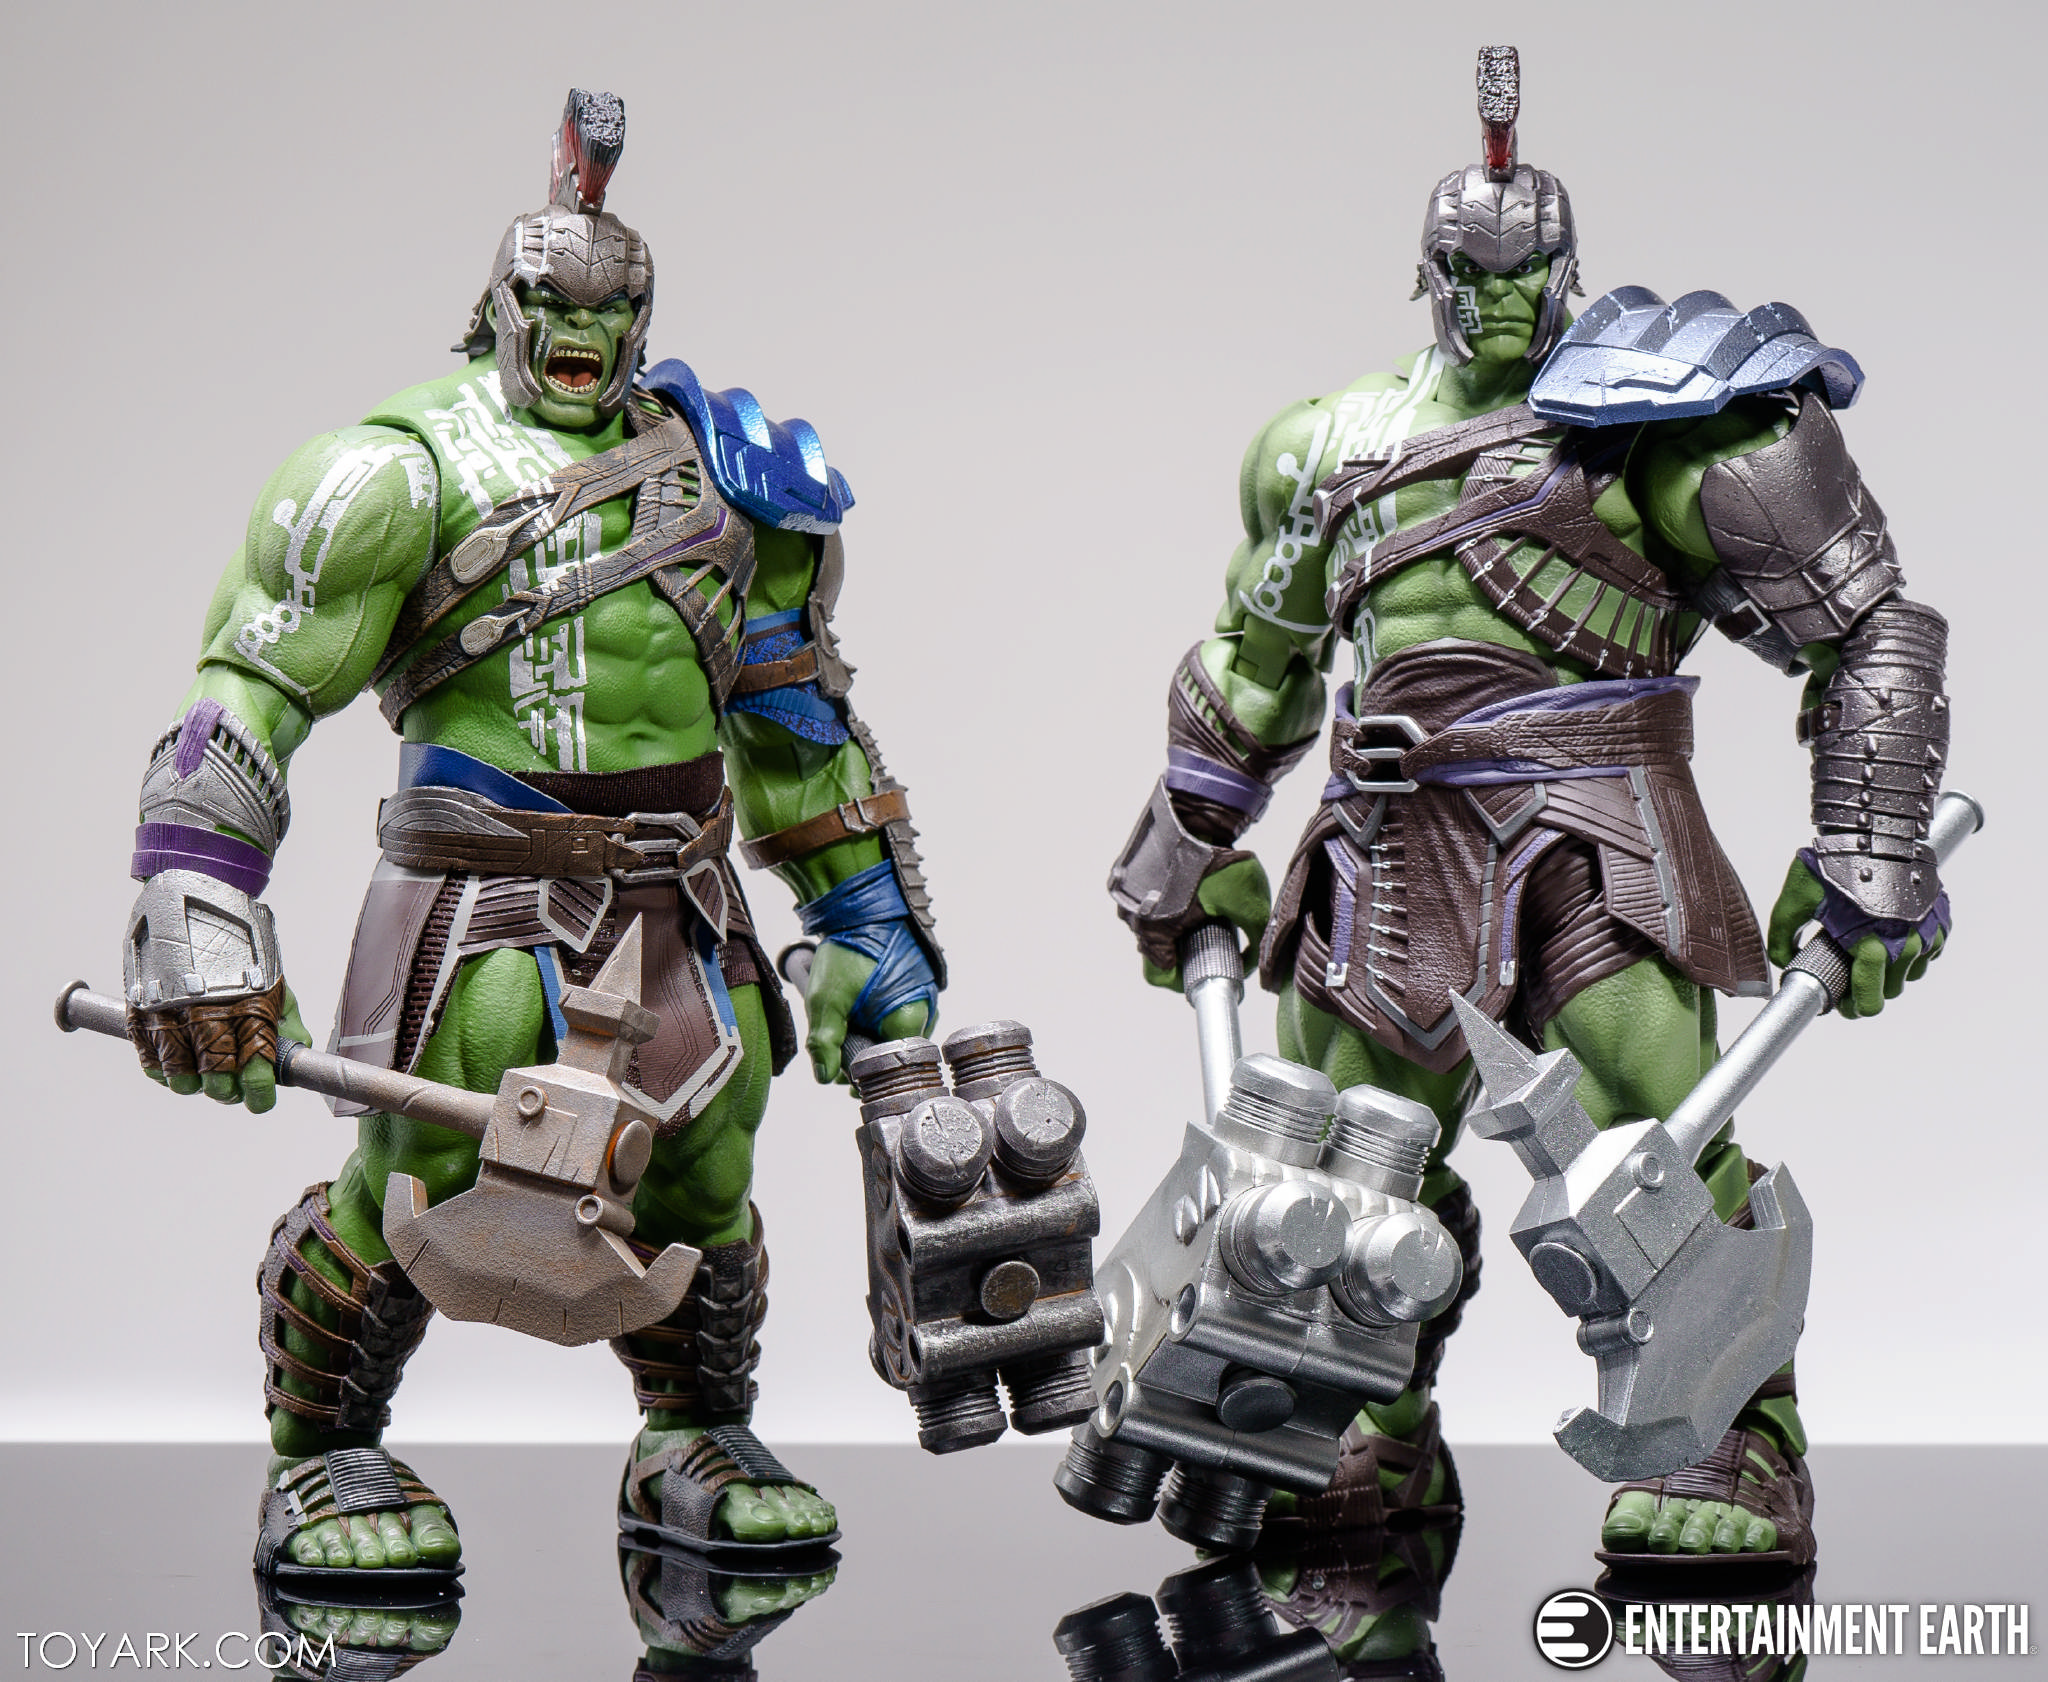 Toyarks One12 Collective Ragnarok Hulk Gallery Toy Discussion At Circuit Breaker By Bad Moon Toyarkcom The Toyark News